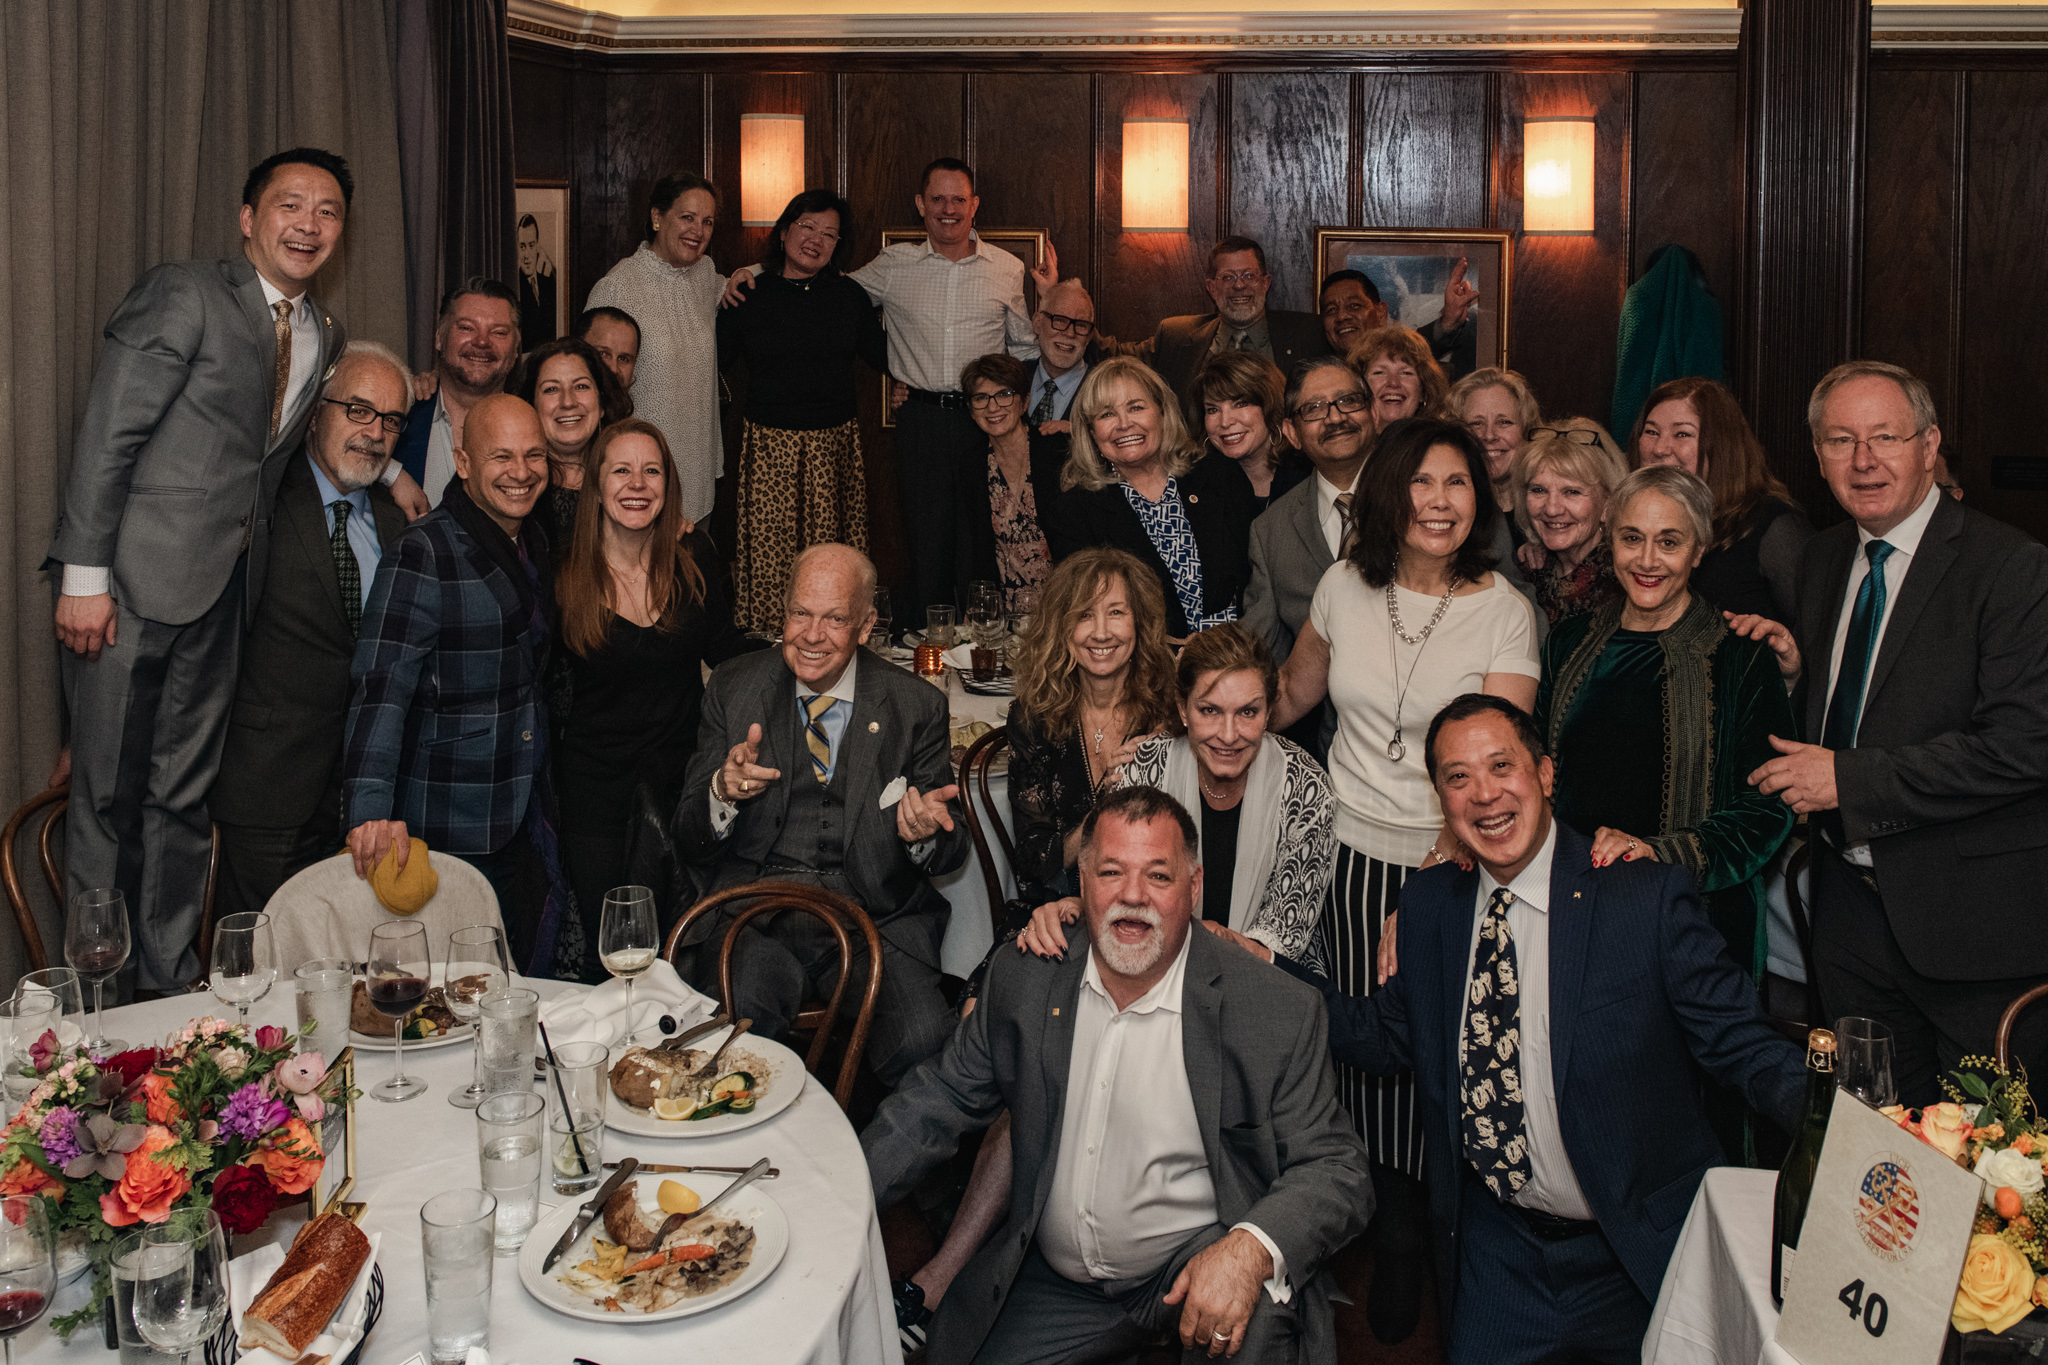 Group photo from the NCCA retirement dinner in San Francisco at John's Grill